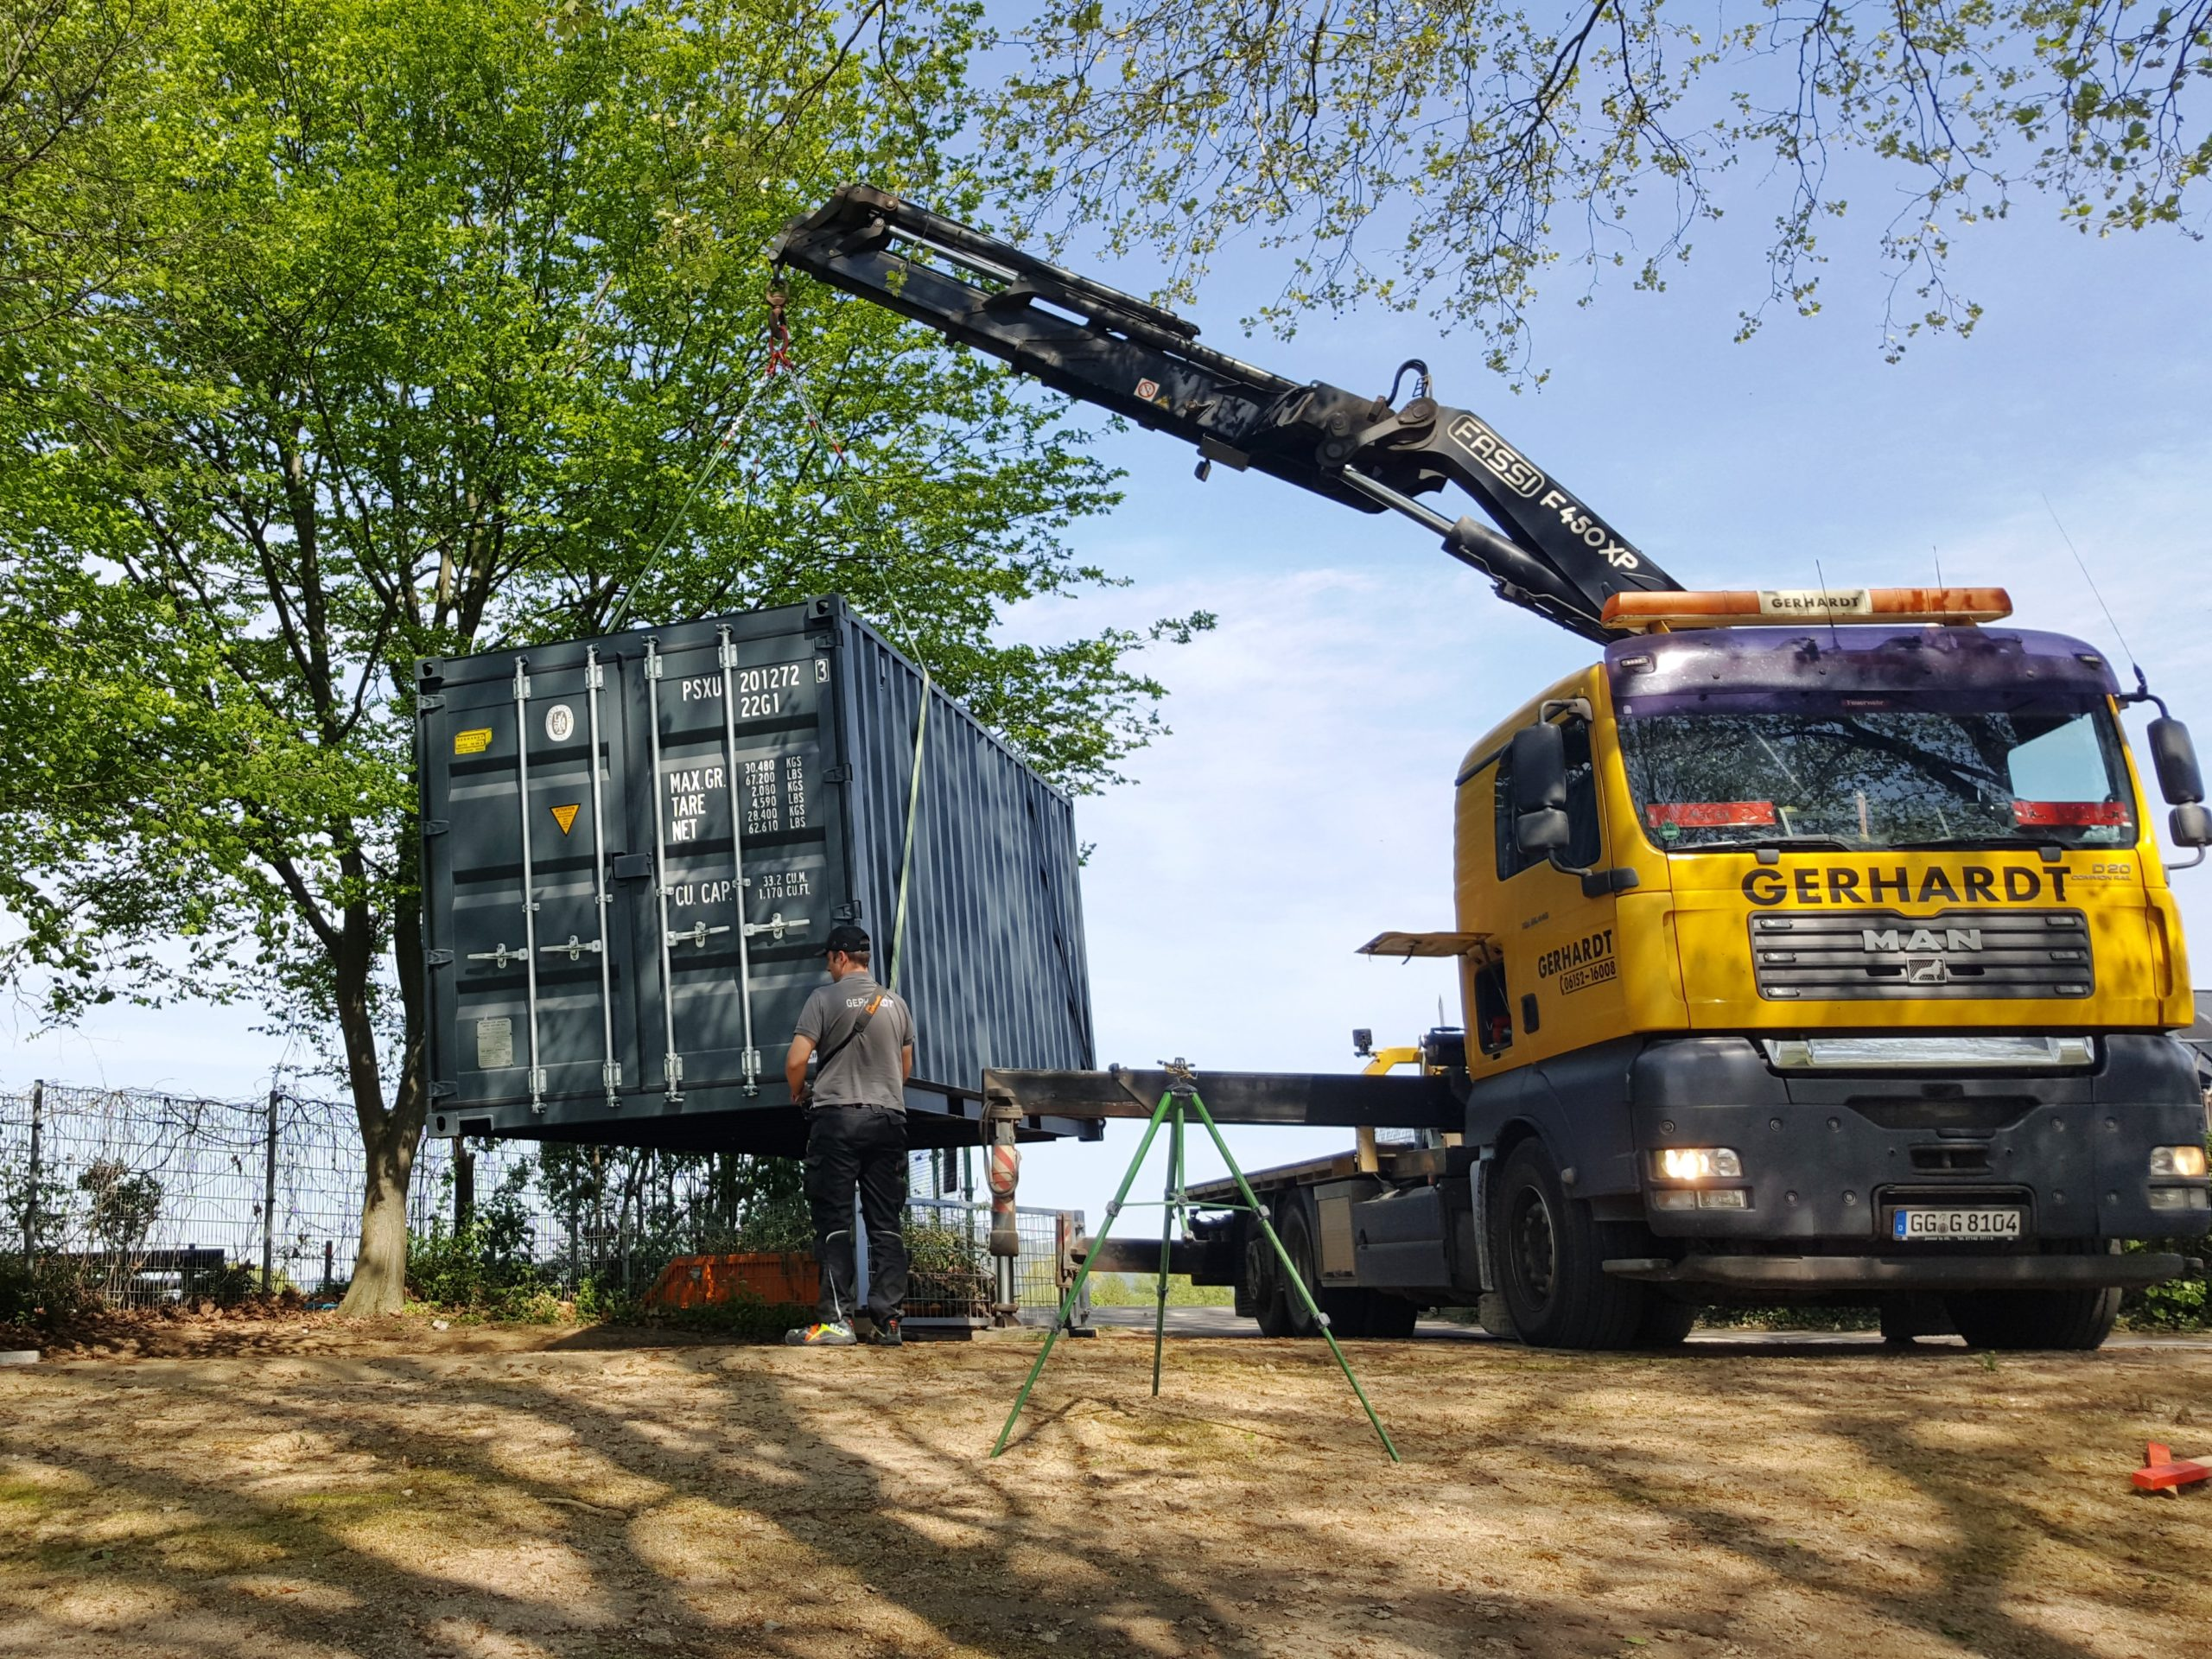 Container kommt